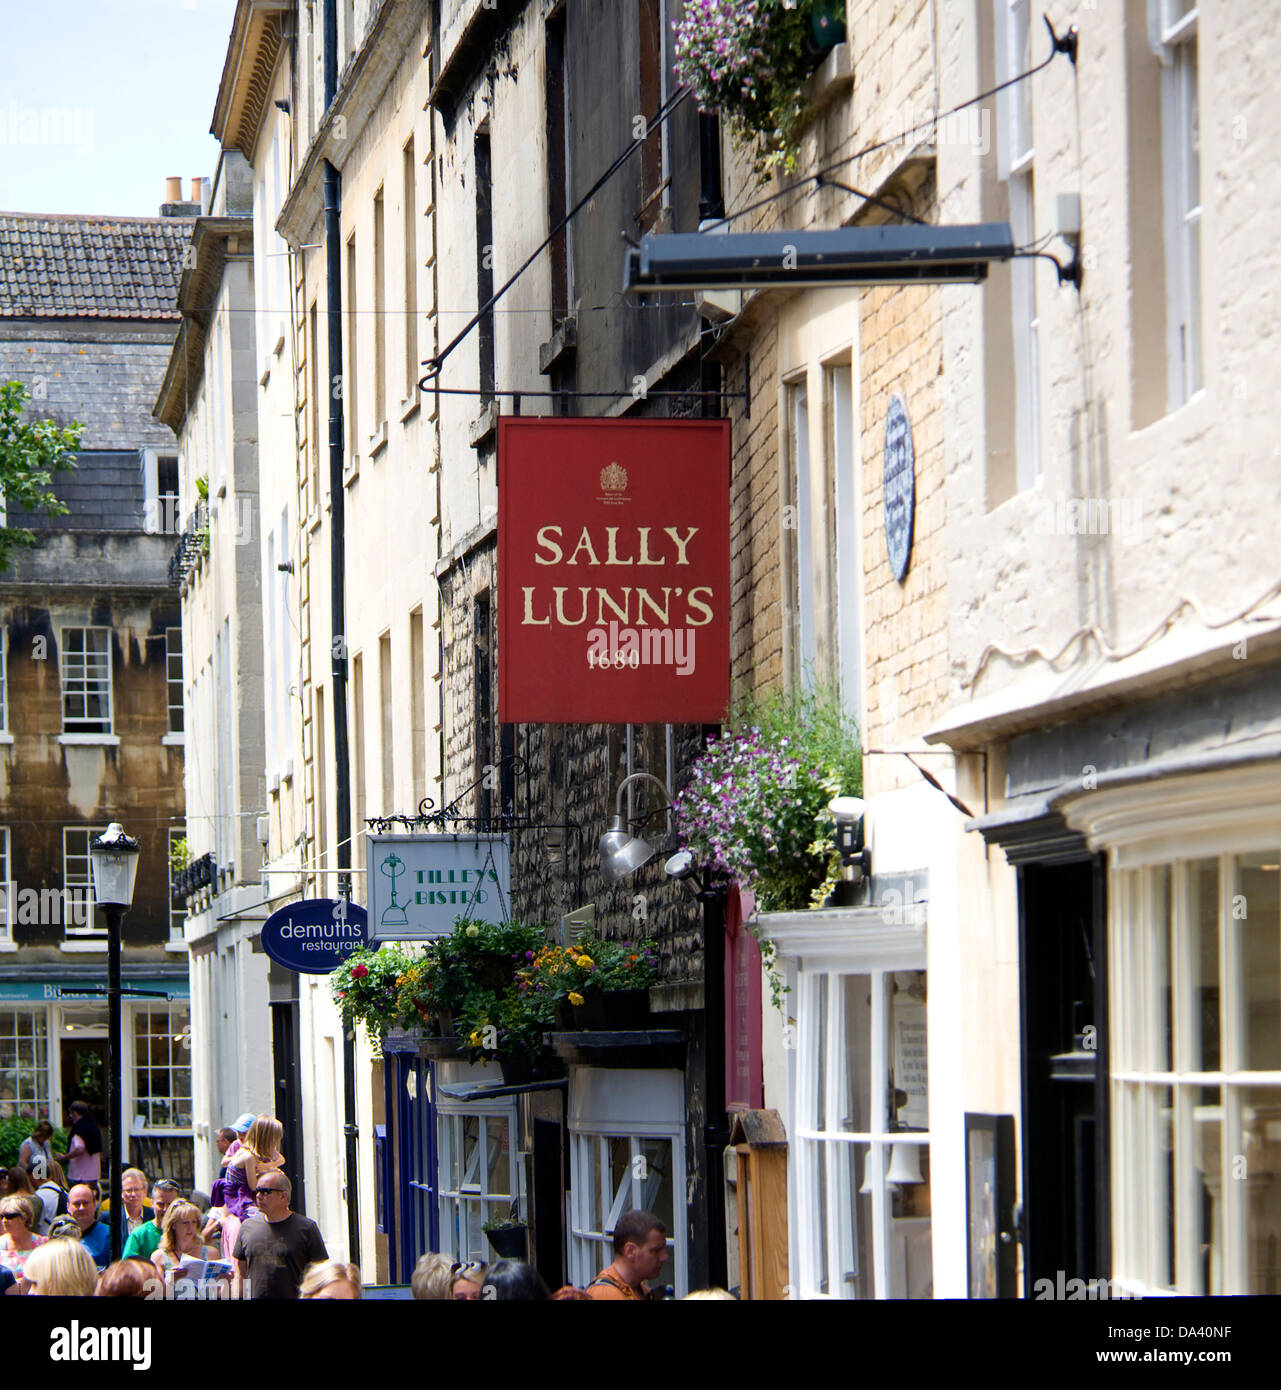 Sally Lunn's tearooms Bath Somerset England Stock Photo